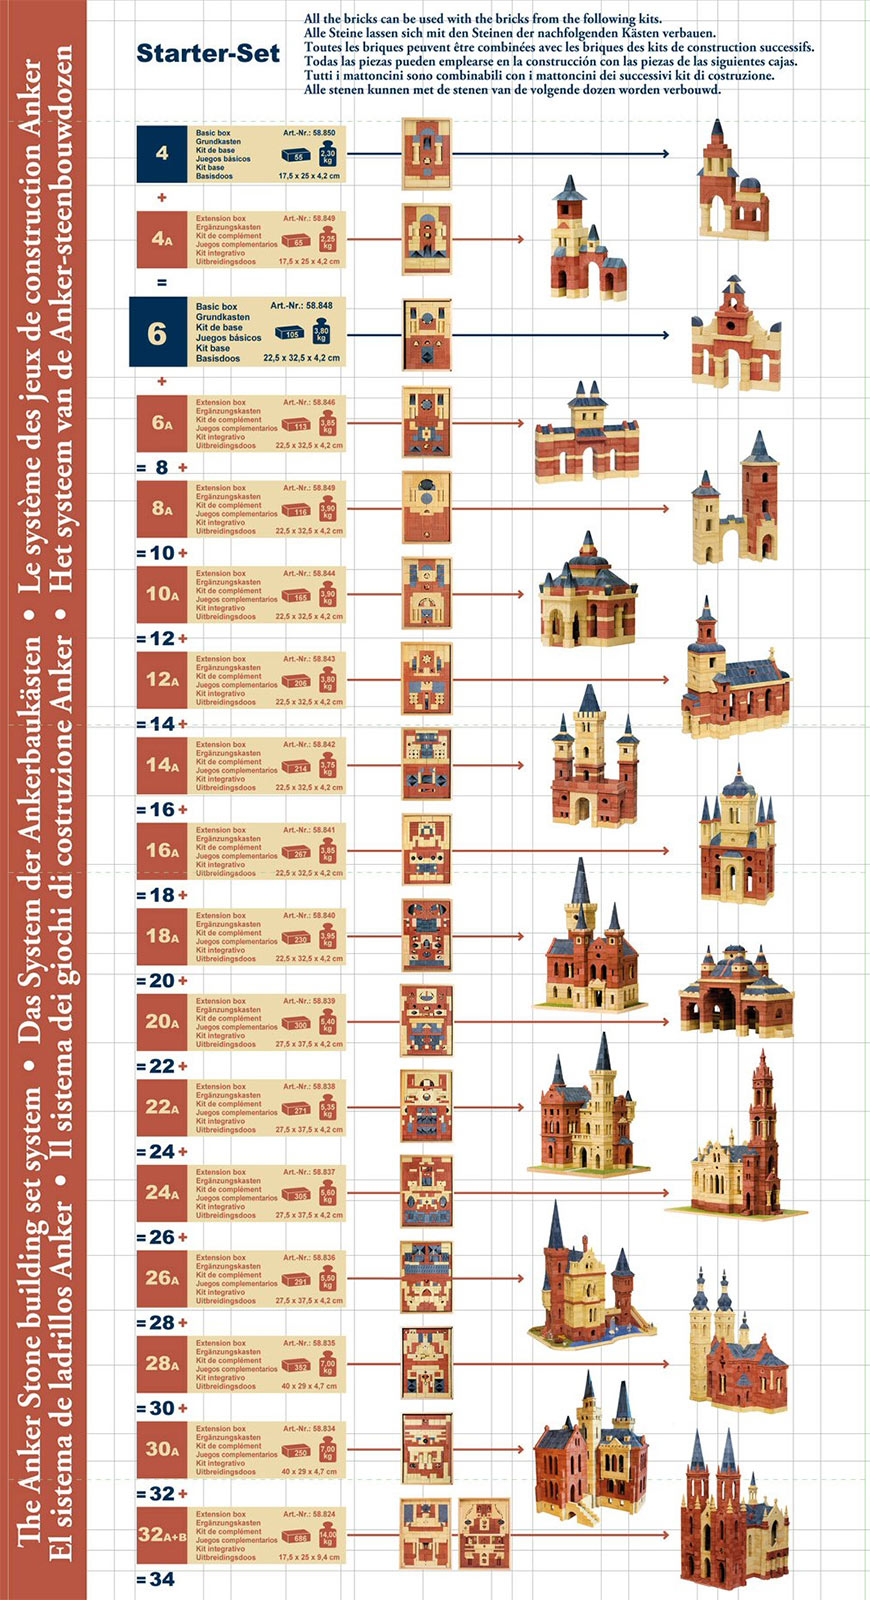 Anchor Stone building block set system chart